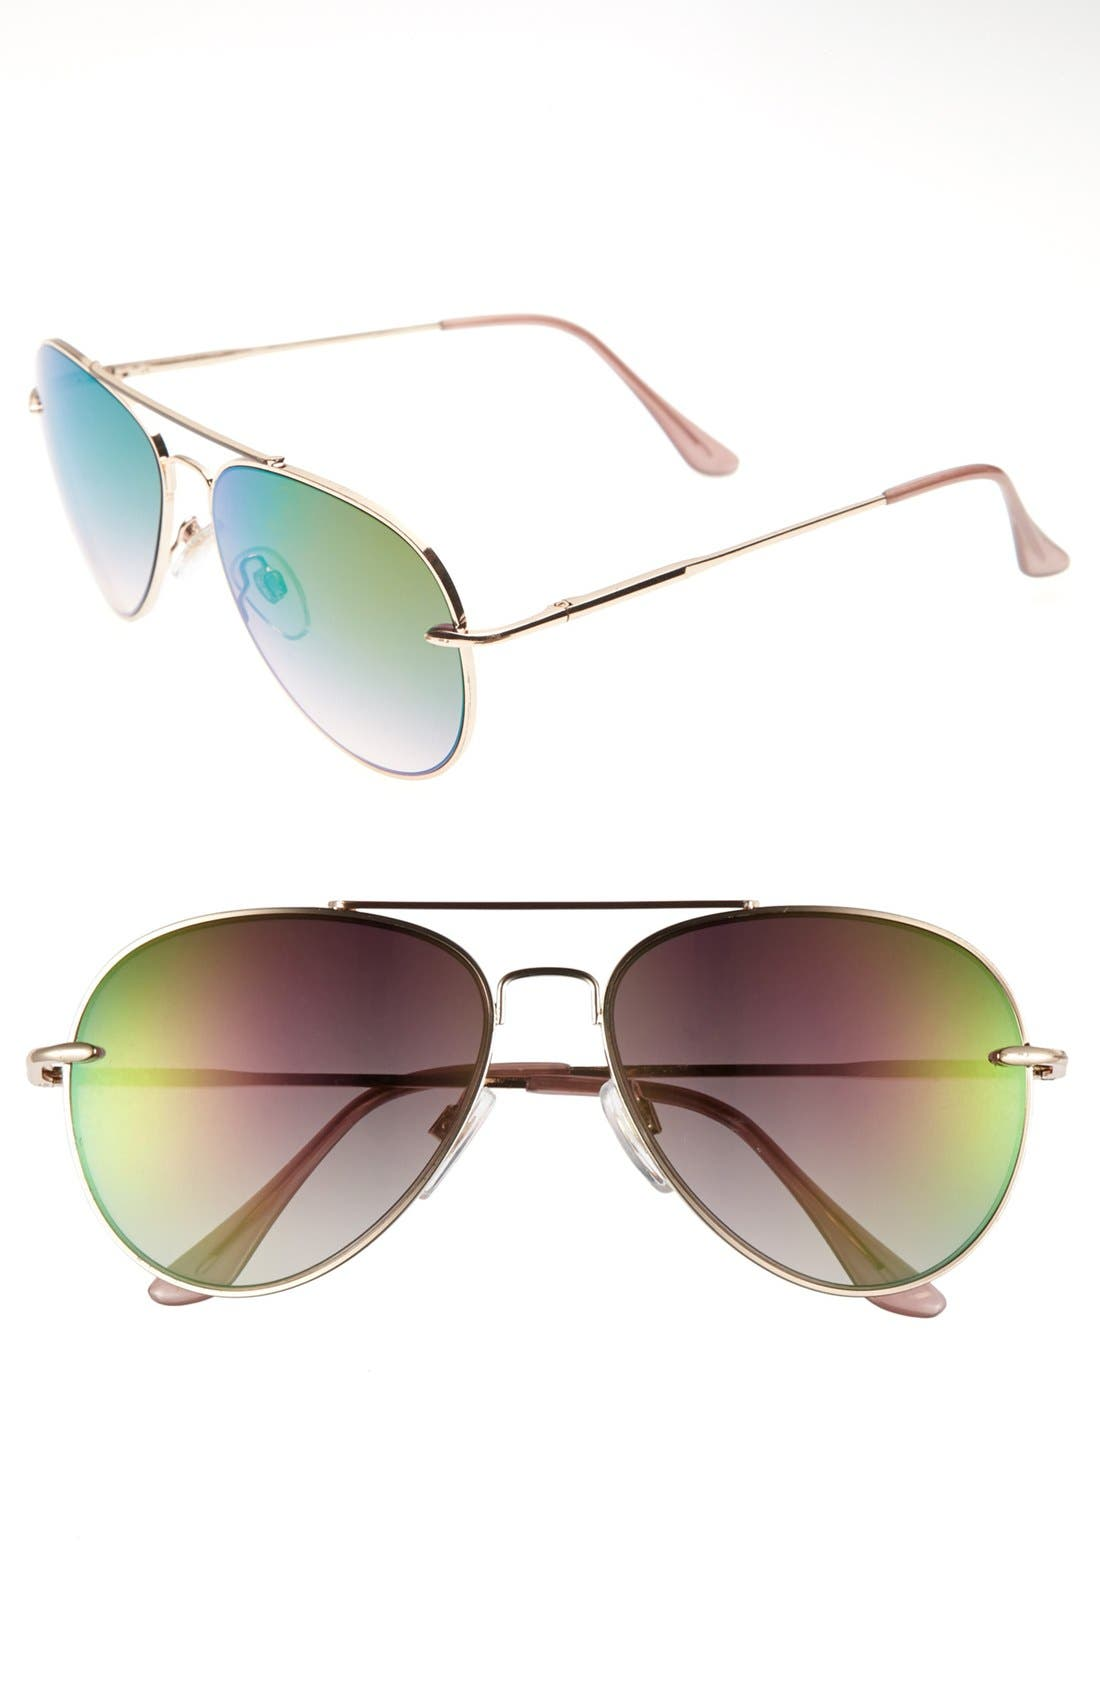 Main Image - Topshop 'The Collection Starring Kate Bosworth' Aviator Sunglasses